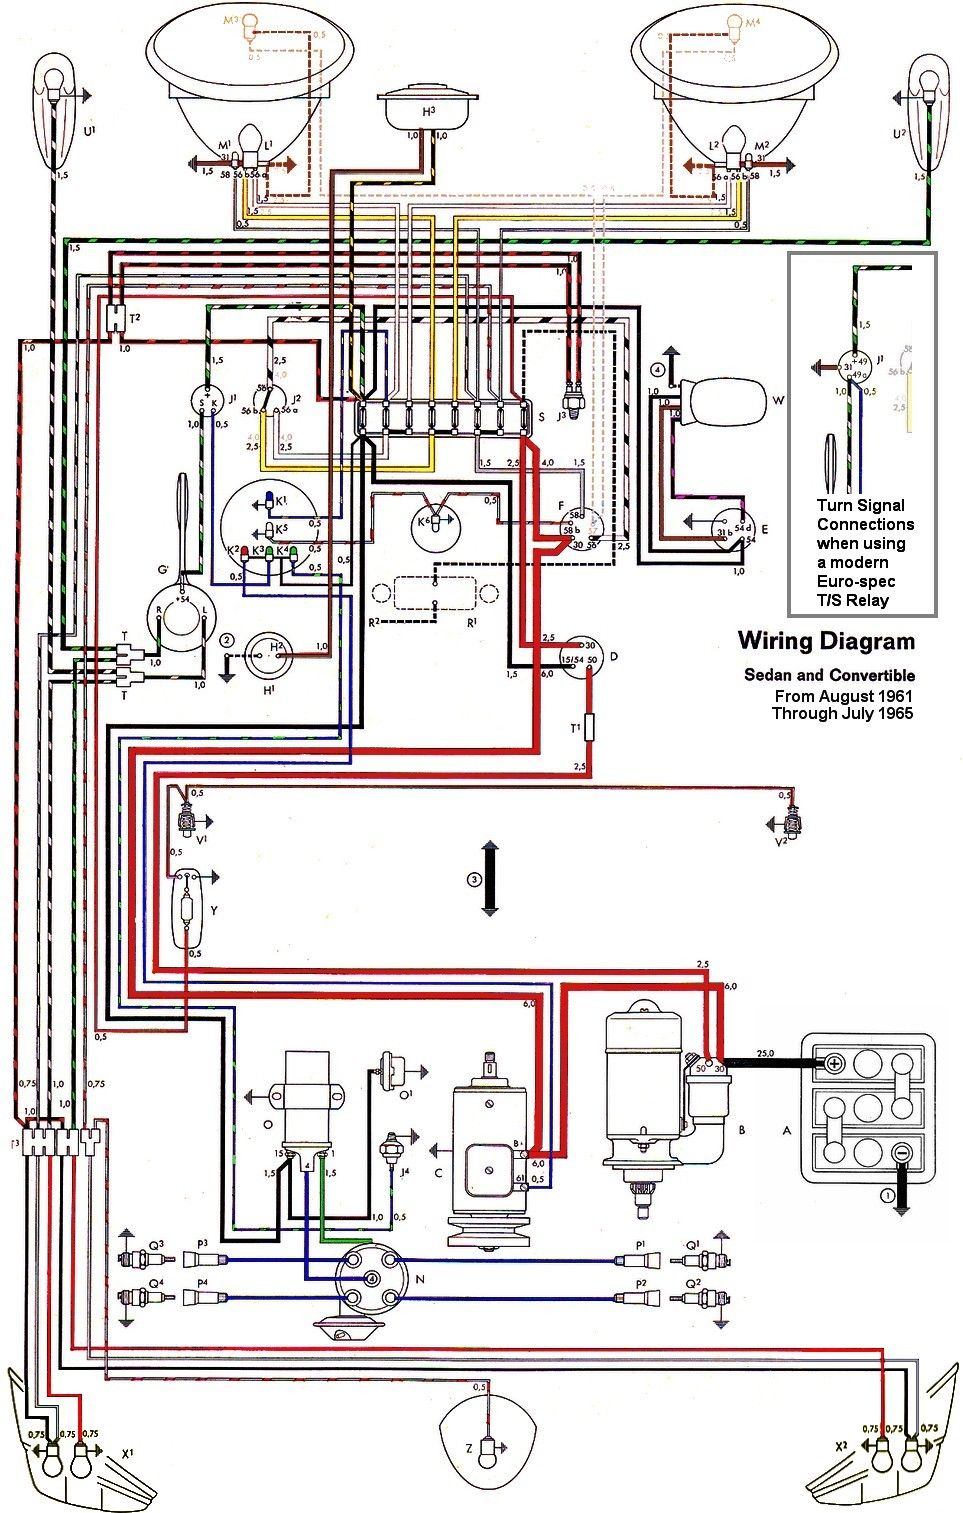 72 Vw Bus Engine Diagram Archive Of Automotive Wiring Lace Hemi Humbucker Diagrams Electrical Schematics Rh Thyl Co Uk